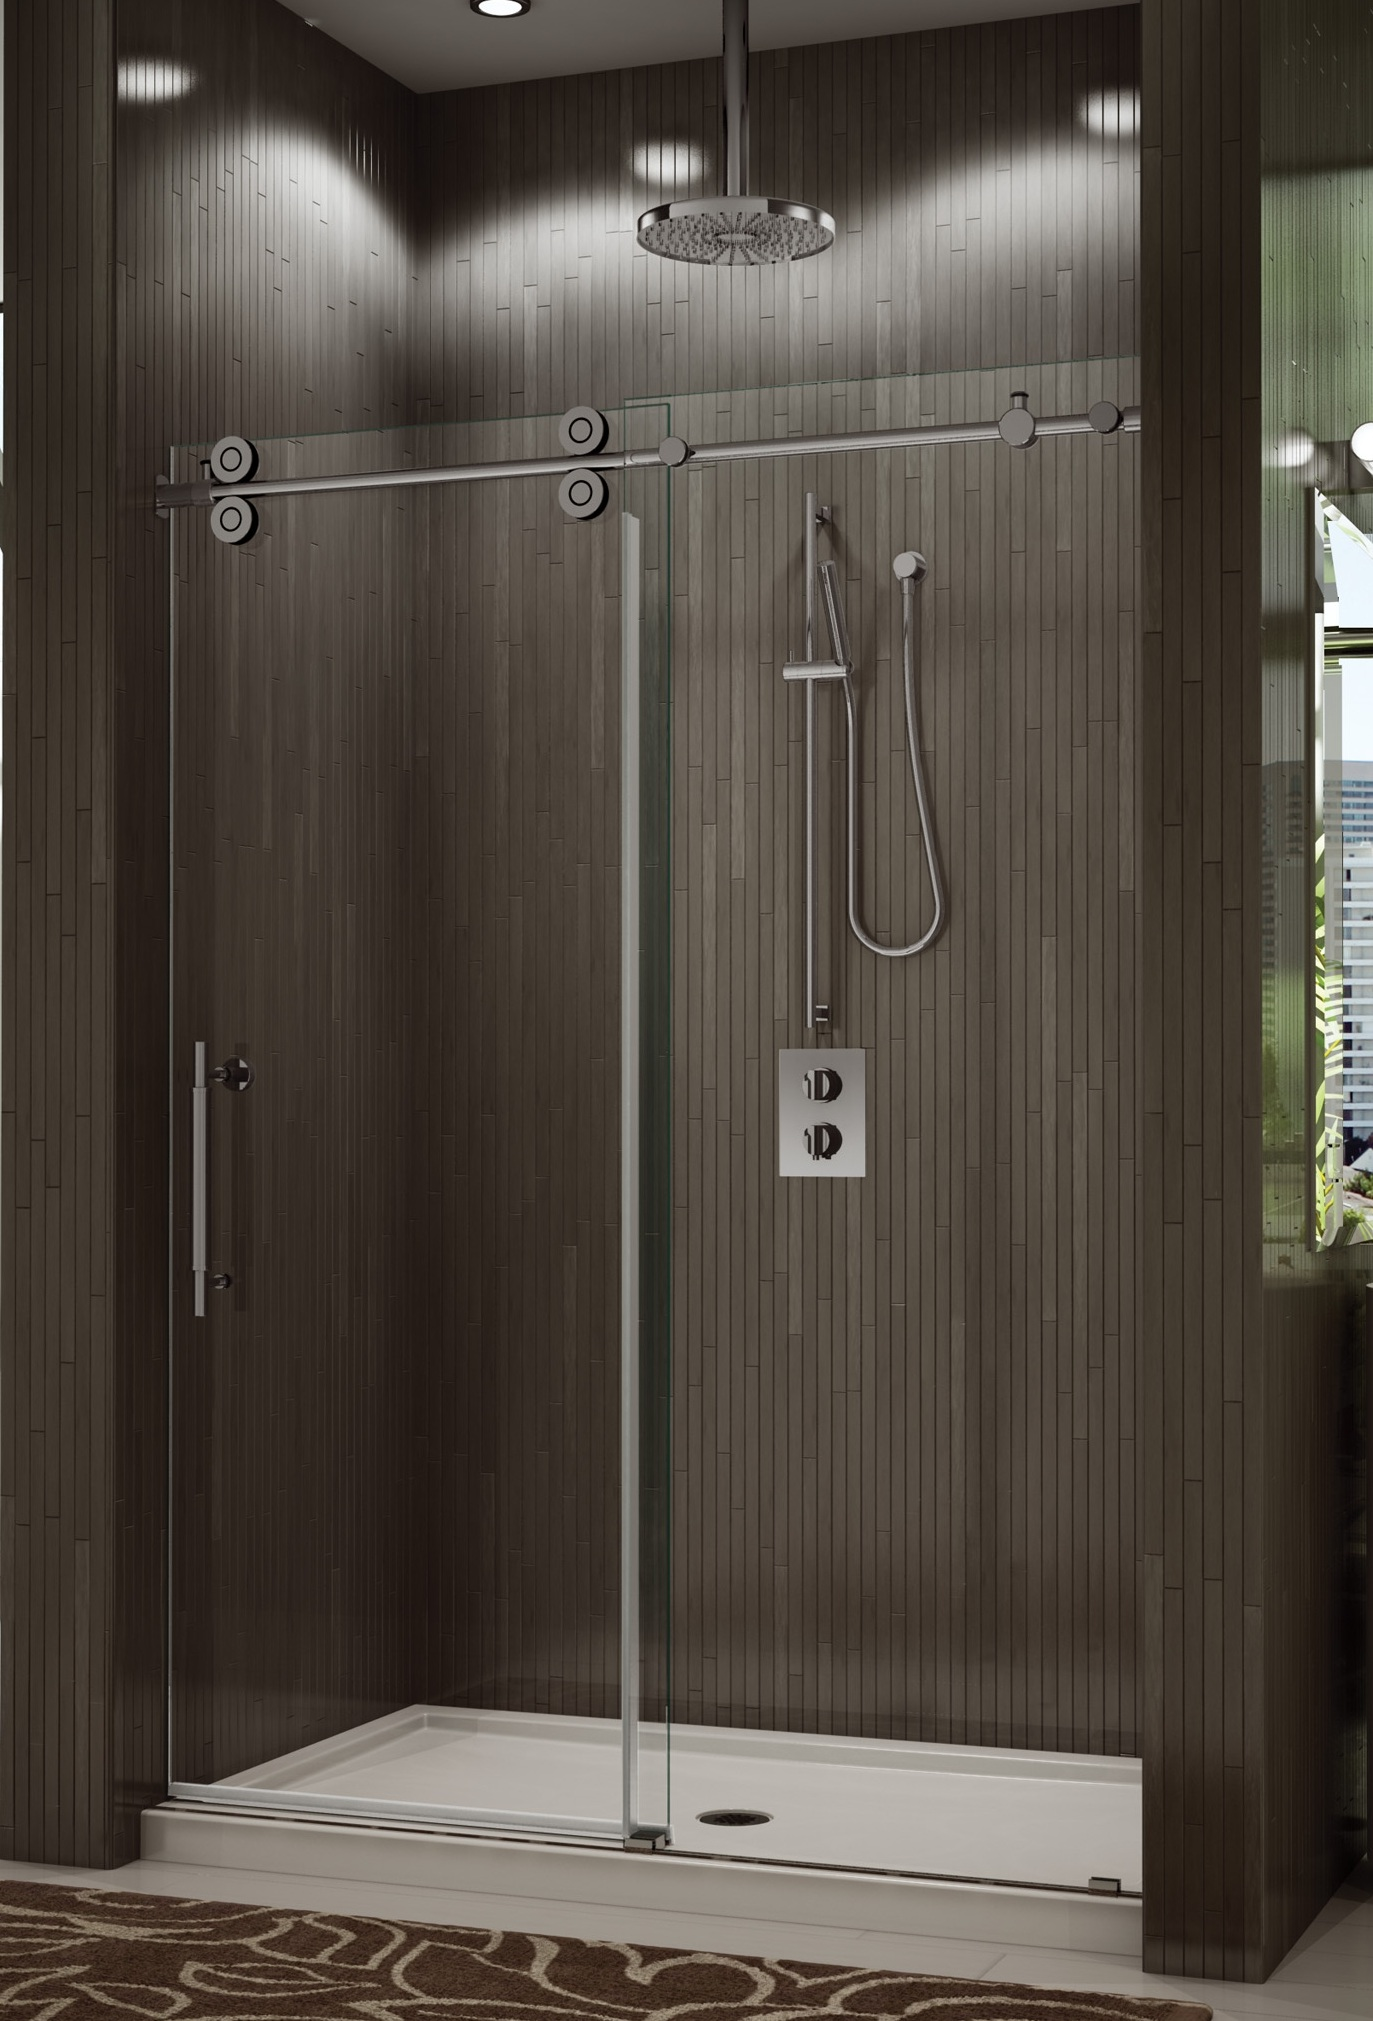 Shower Door of Canada Inc.: Shower Enclosures | Sliding Shower Doors